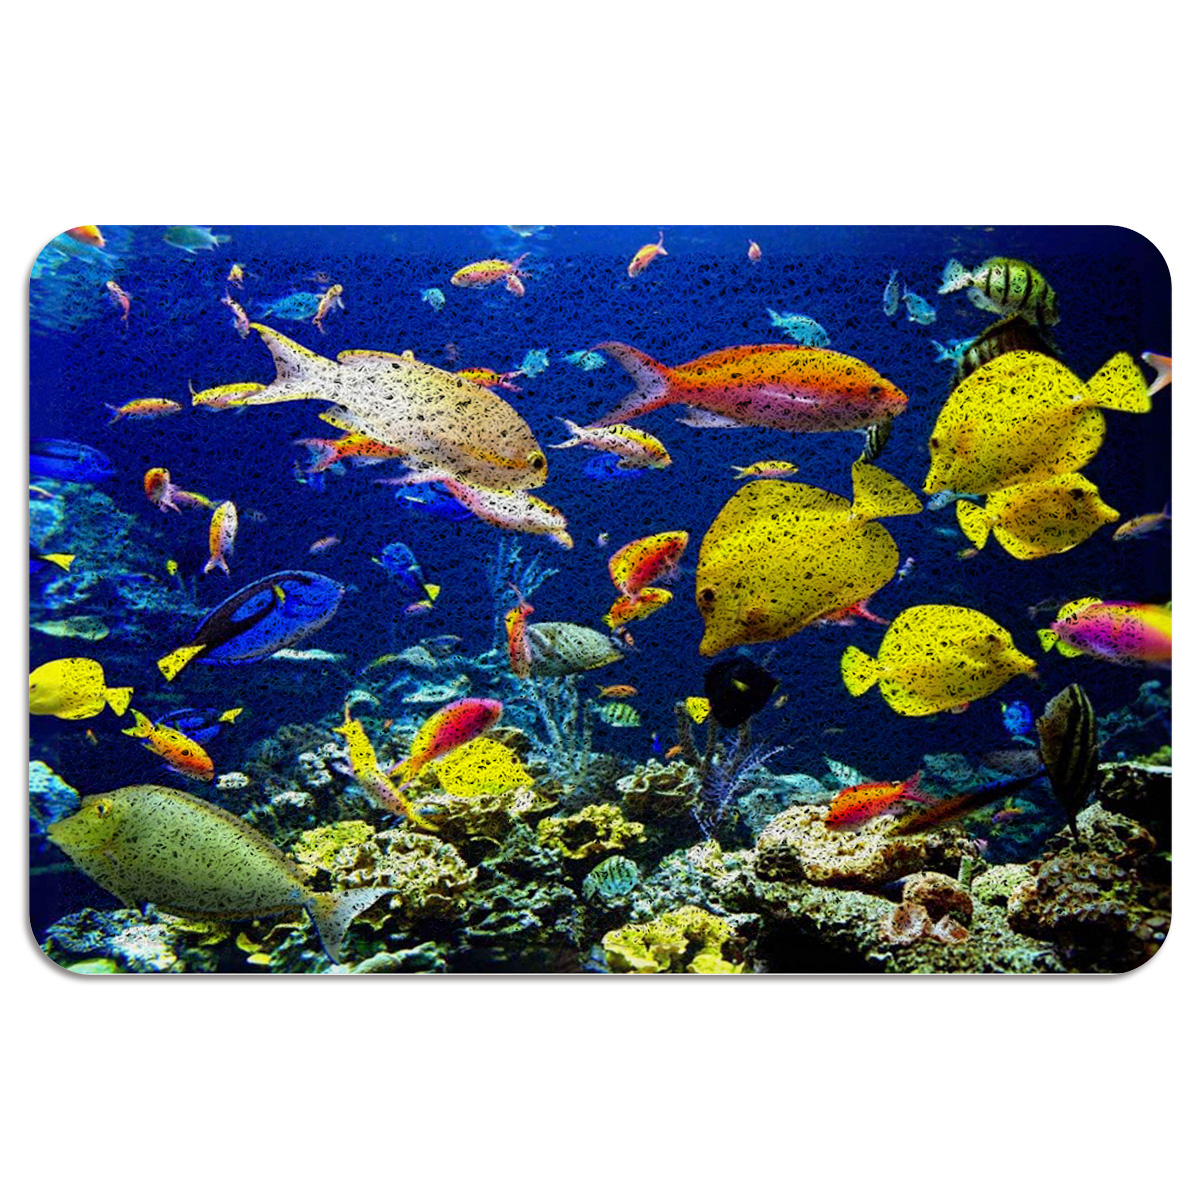 Underwater World Fish Kitchen Rugs Mats